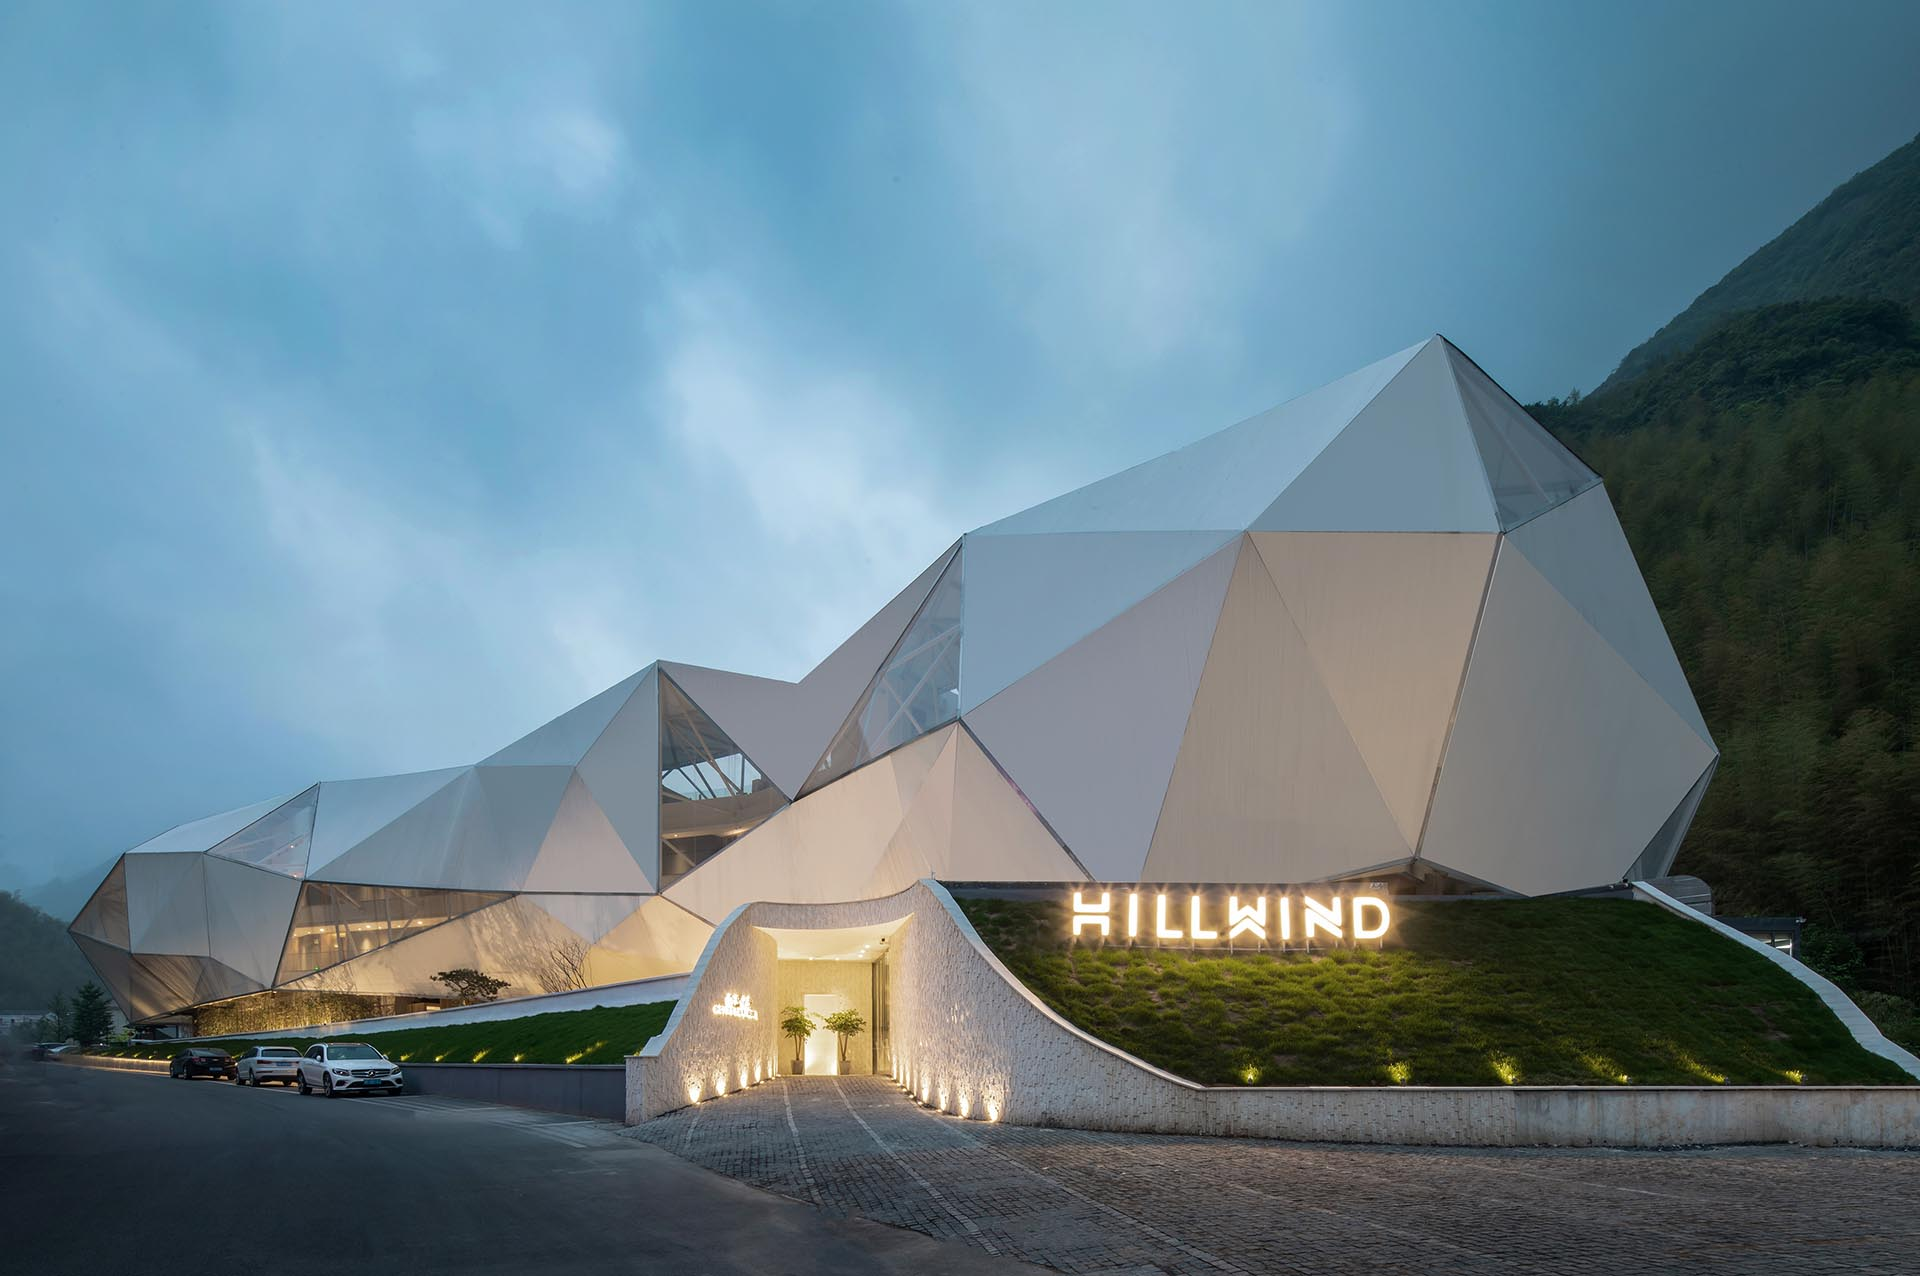 The Hill Wind Hotel and Resort designed by Huafang Wang